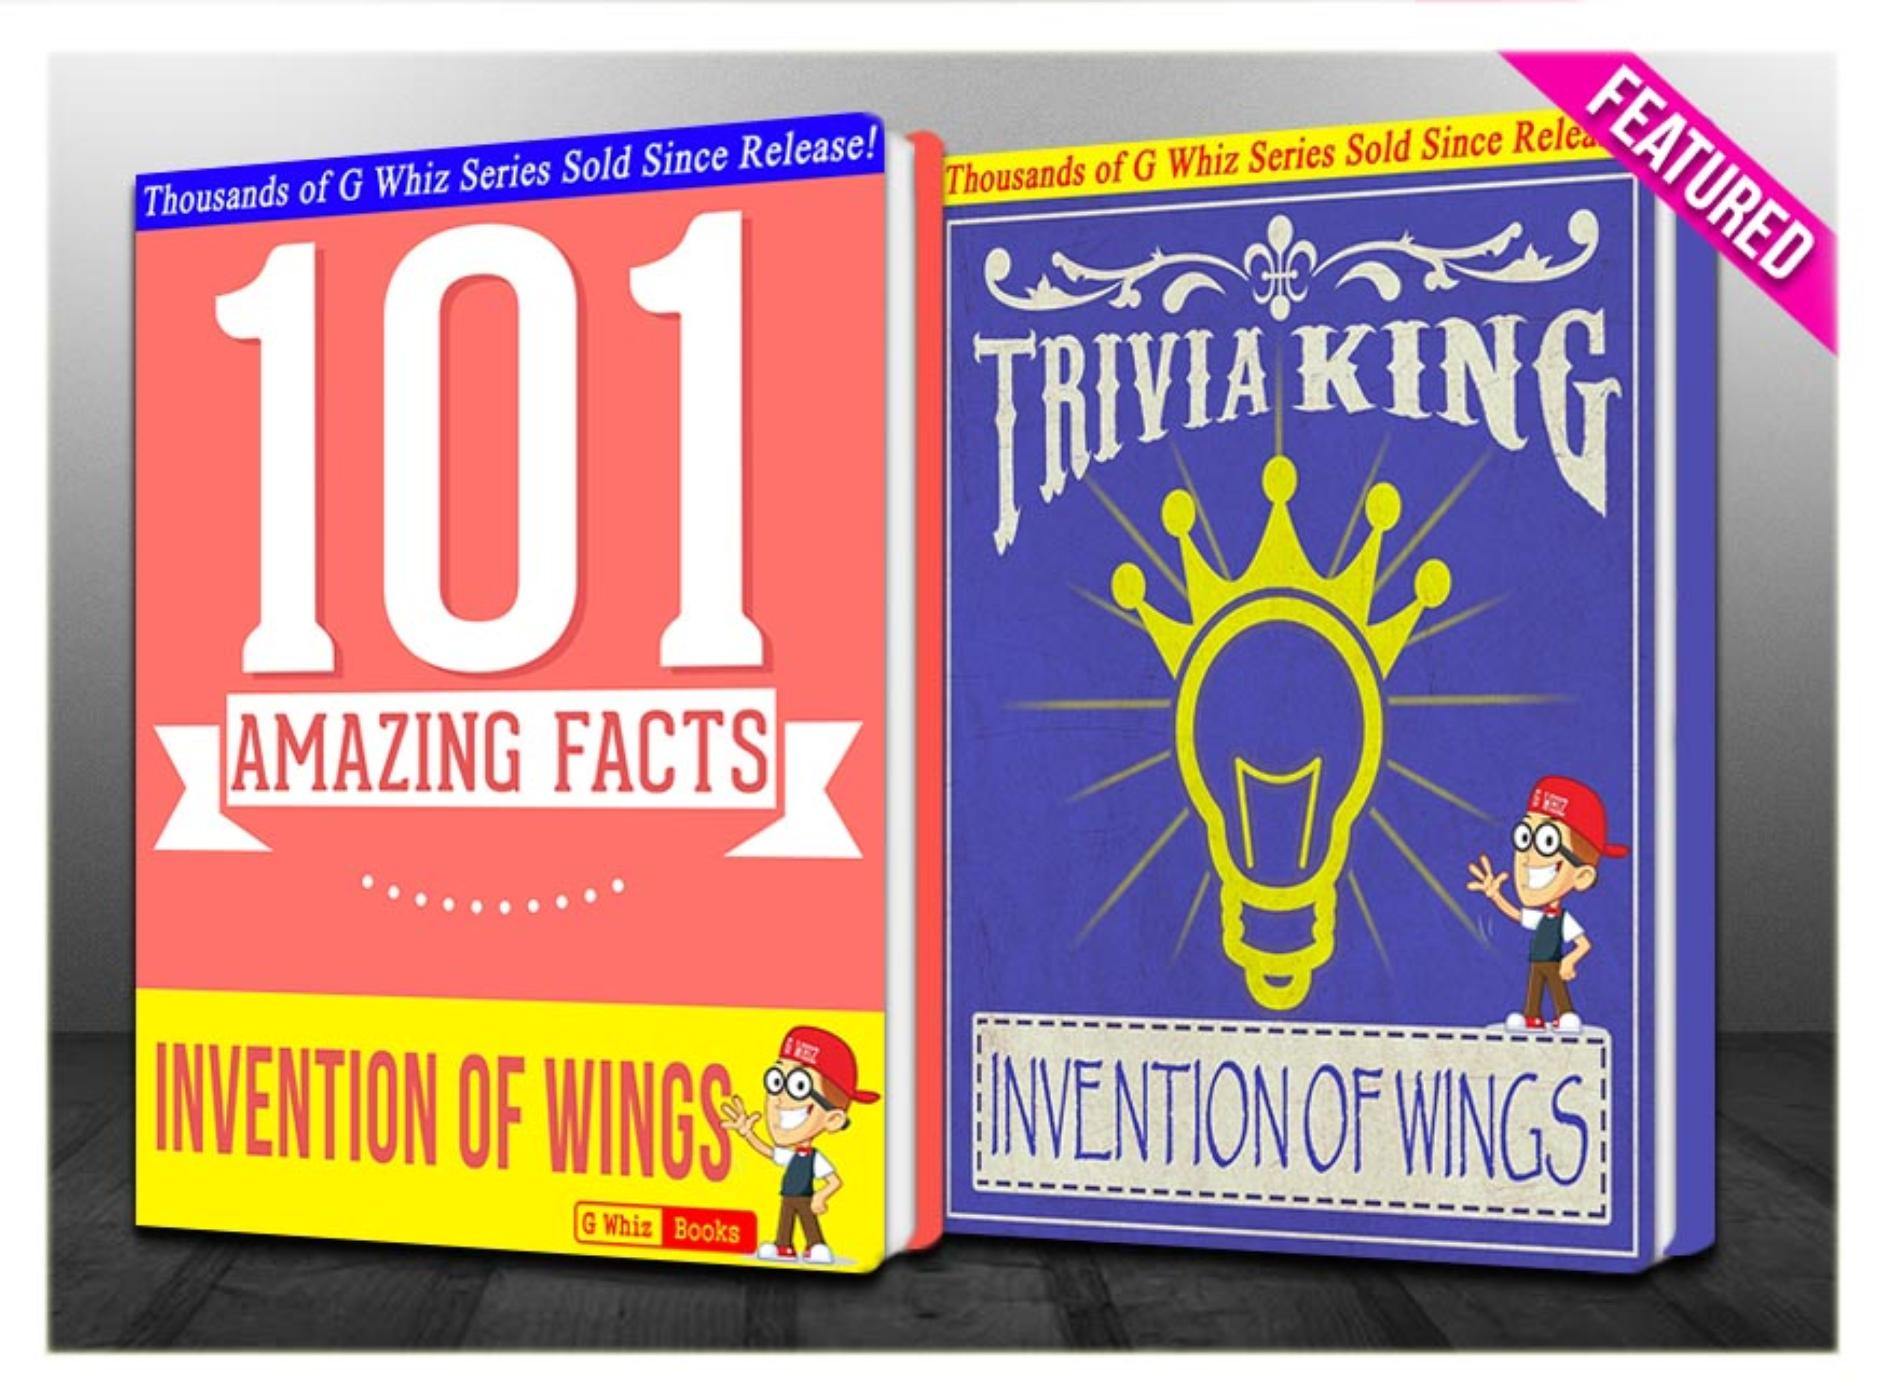 G Whiz - The Invention of Wings - 101 Amazing Facts & Trivia King!